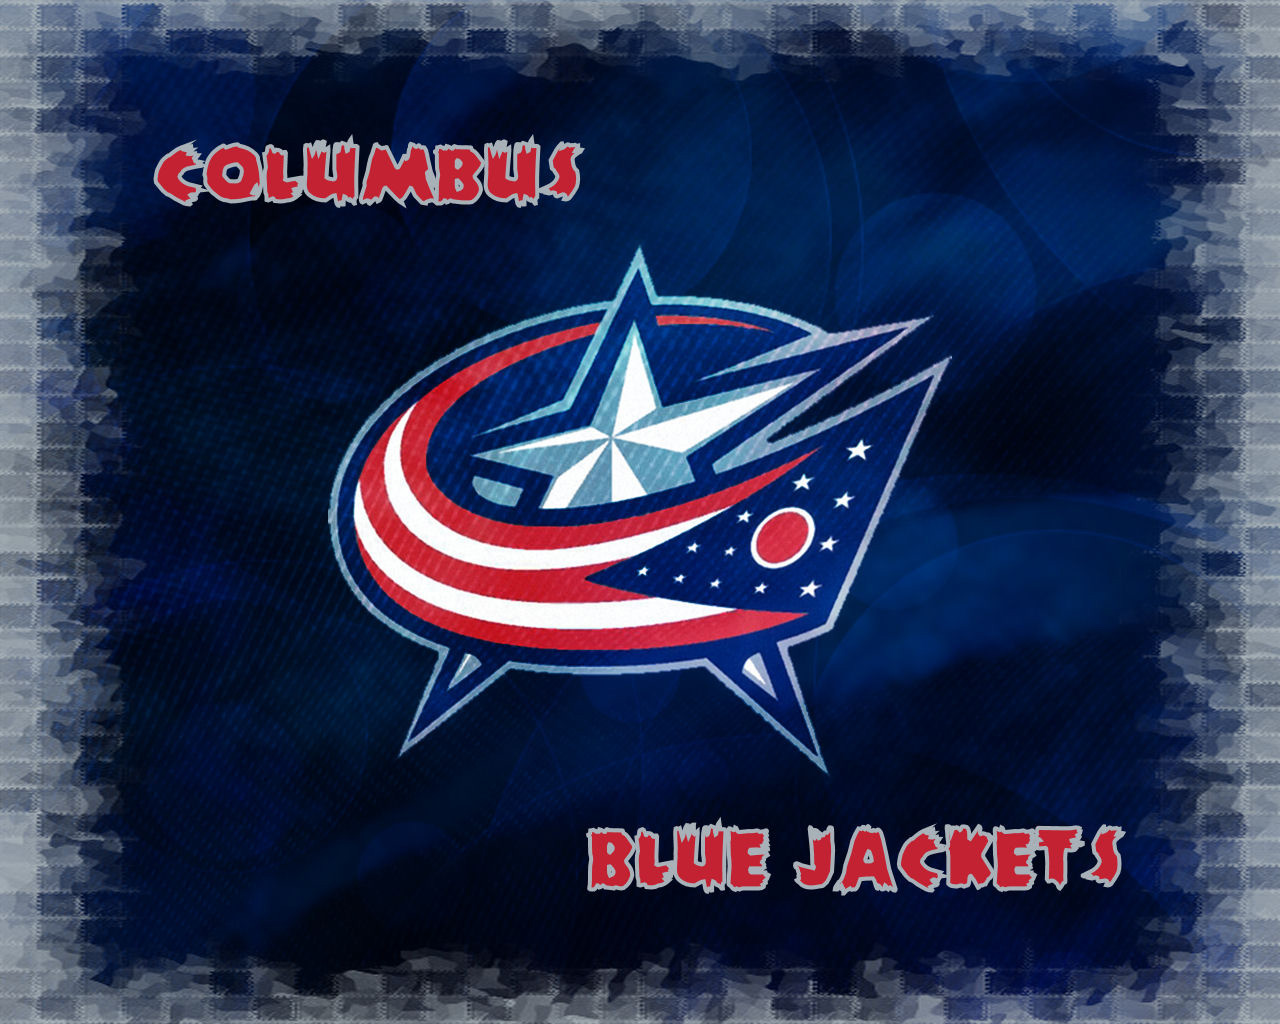 Columbus Blue Jackets Wallpaper - WallpaperSafari